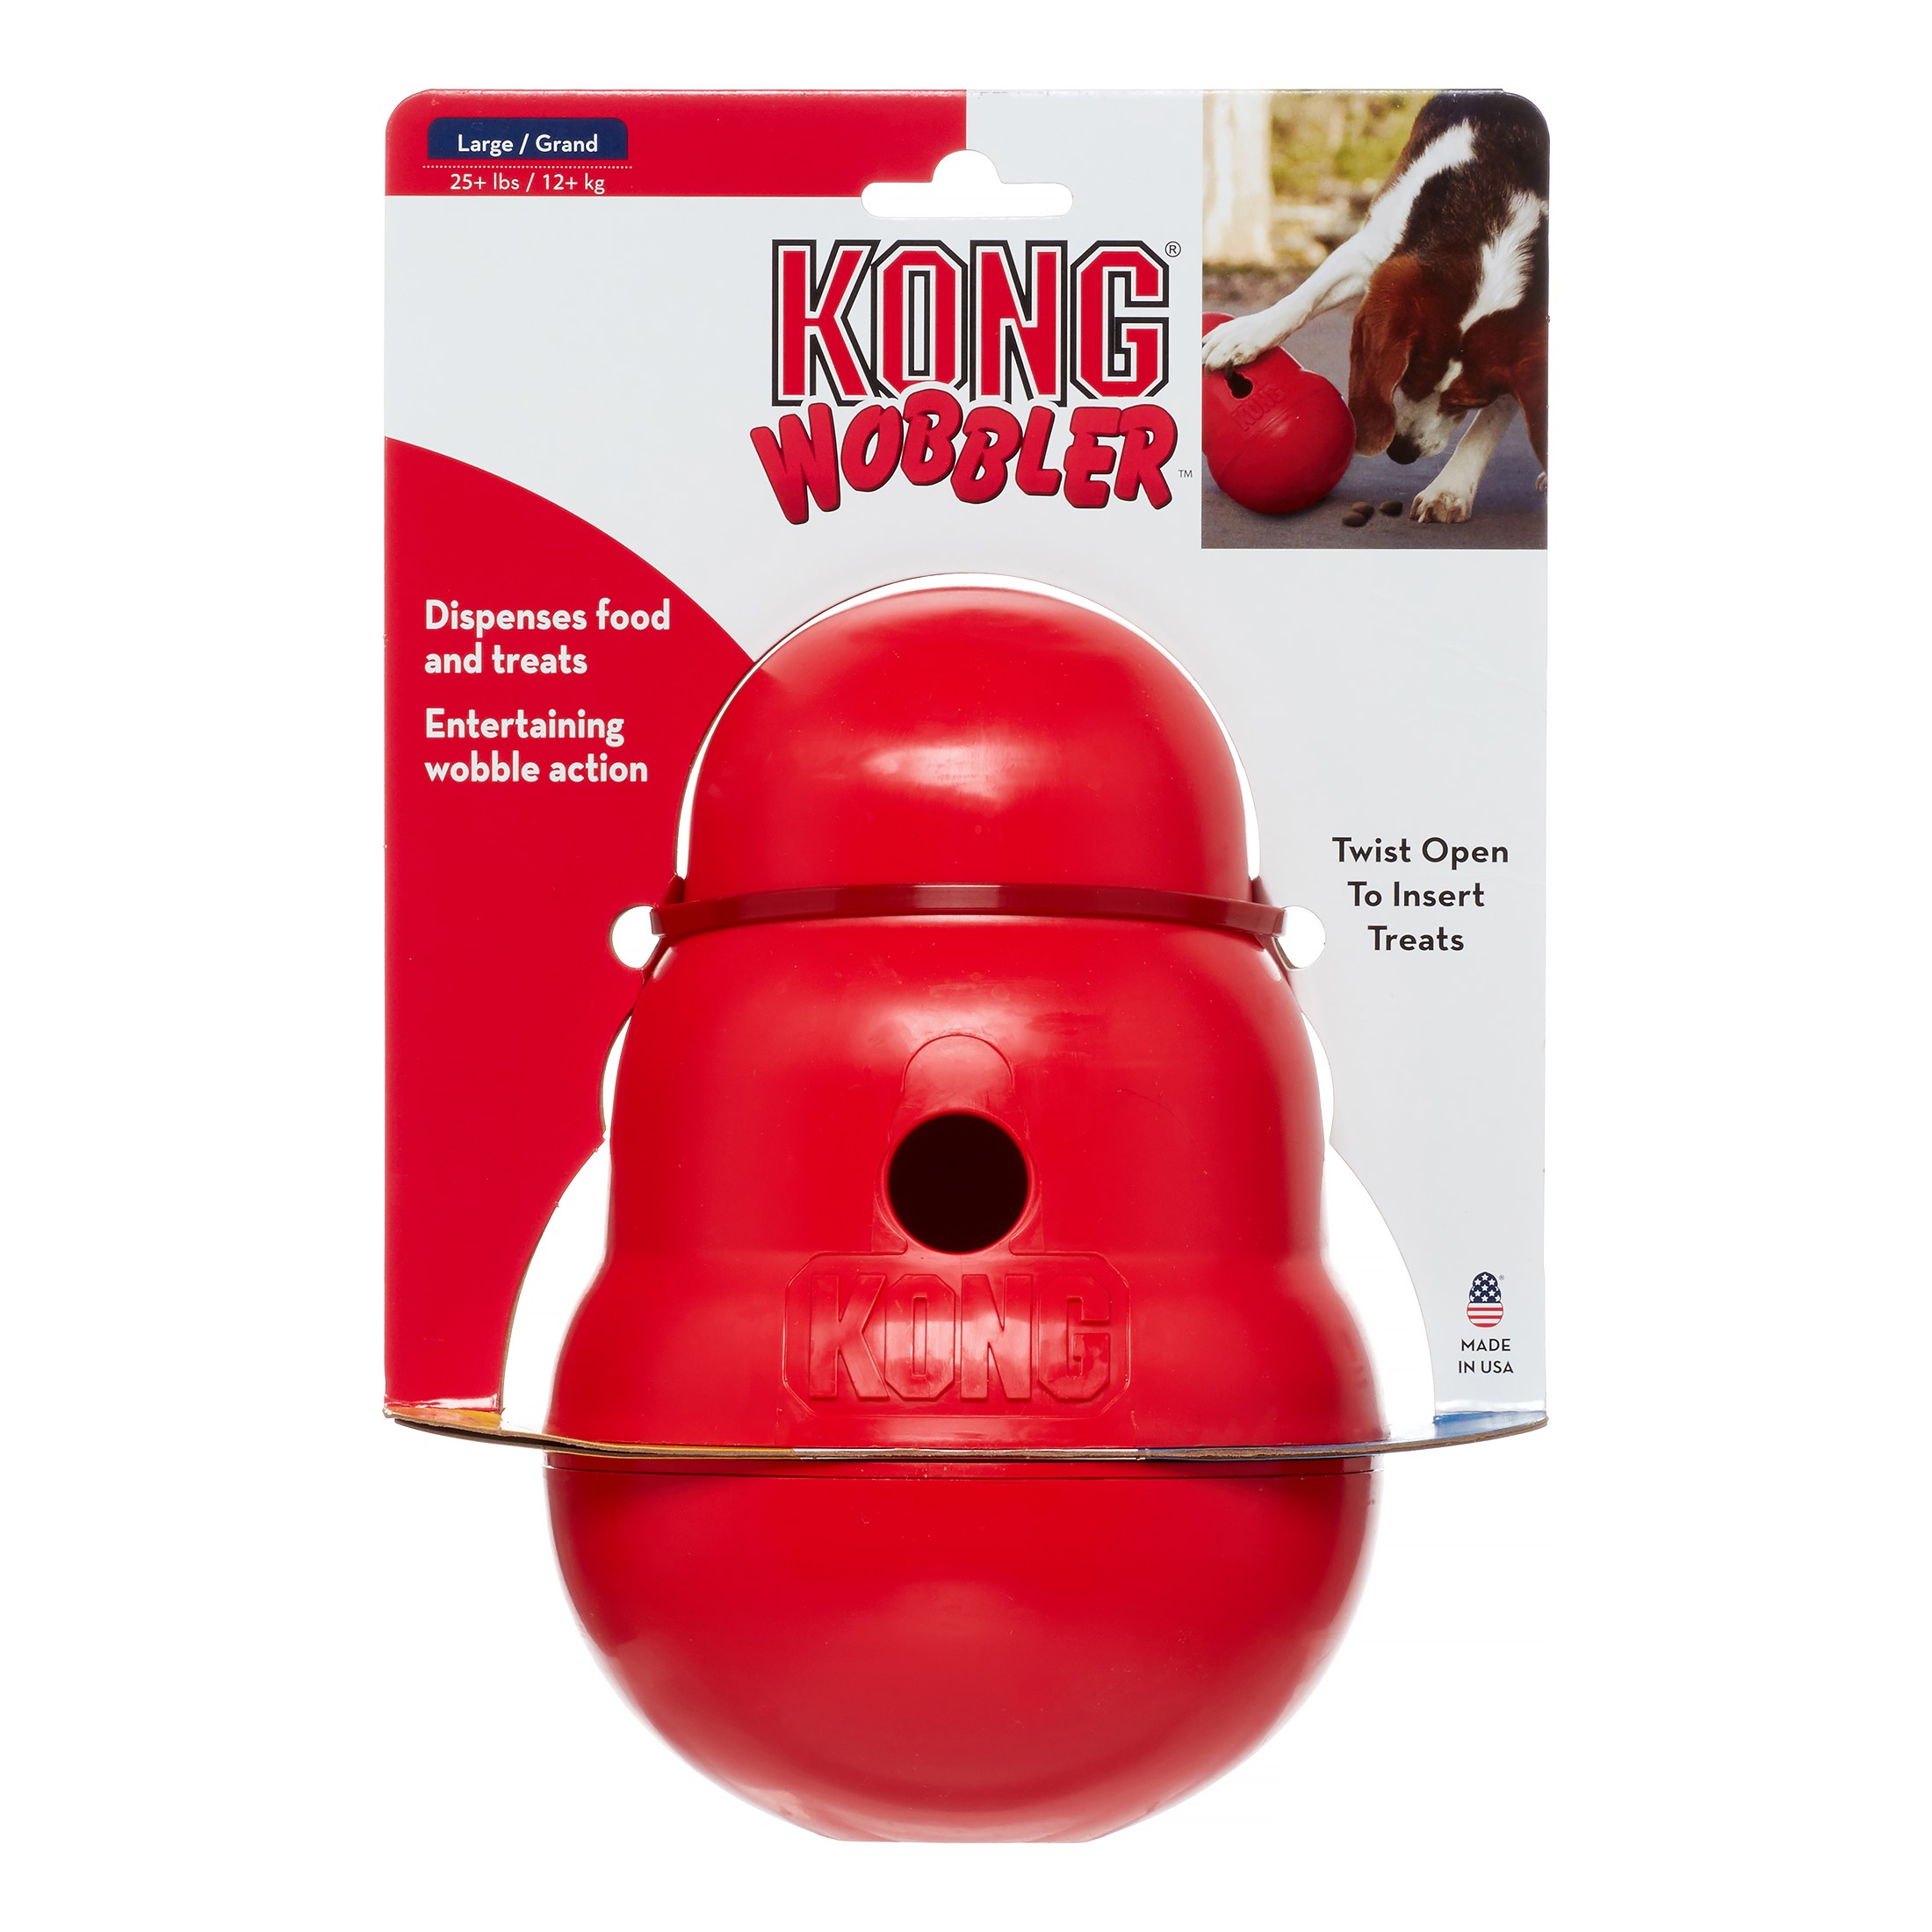 KONG Wobbler Dog Toy, Large